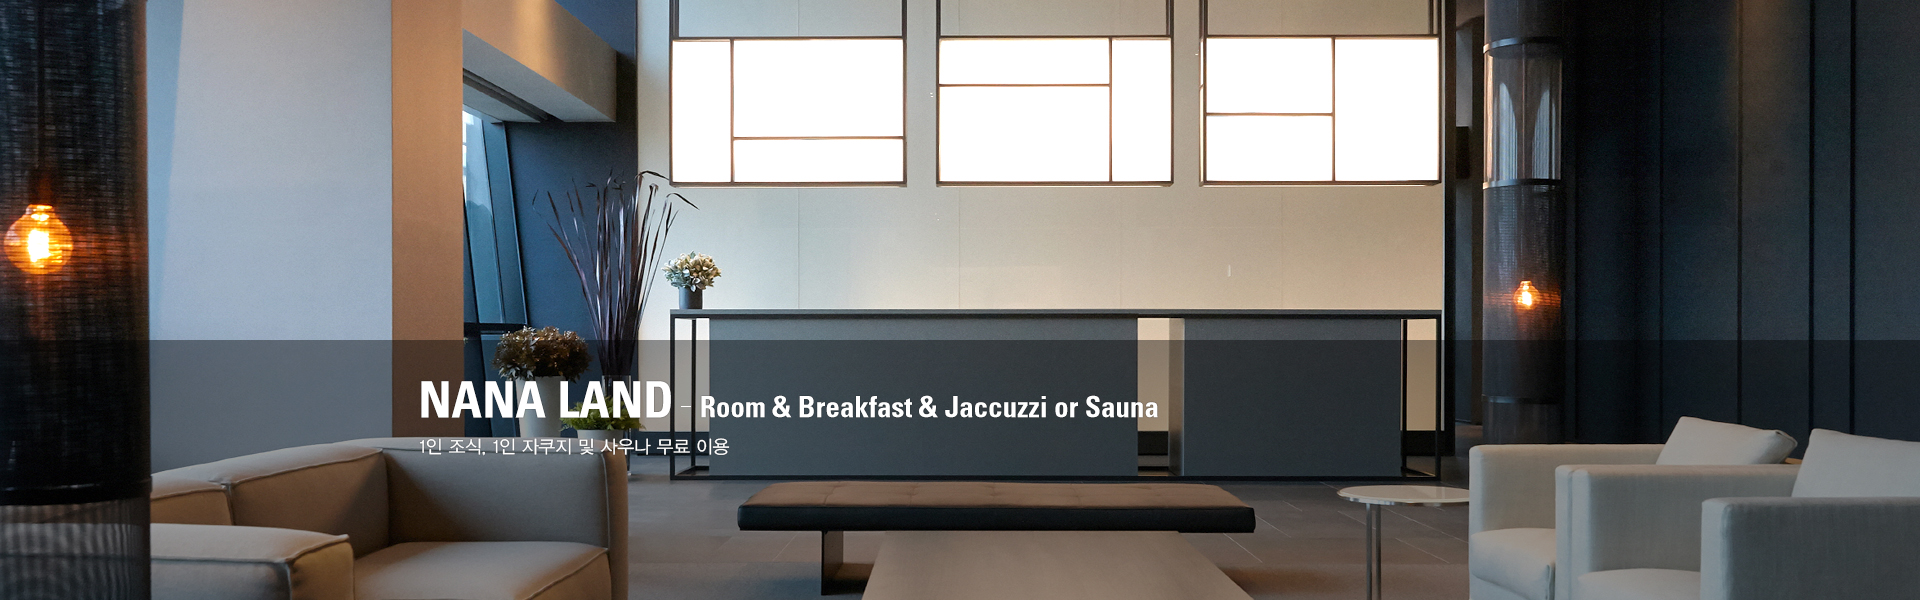 NANA LAND - Room & Breakfast & Jacuzzi or Sauna